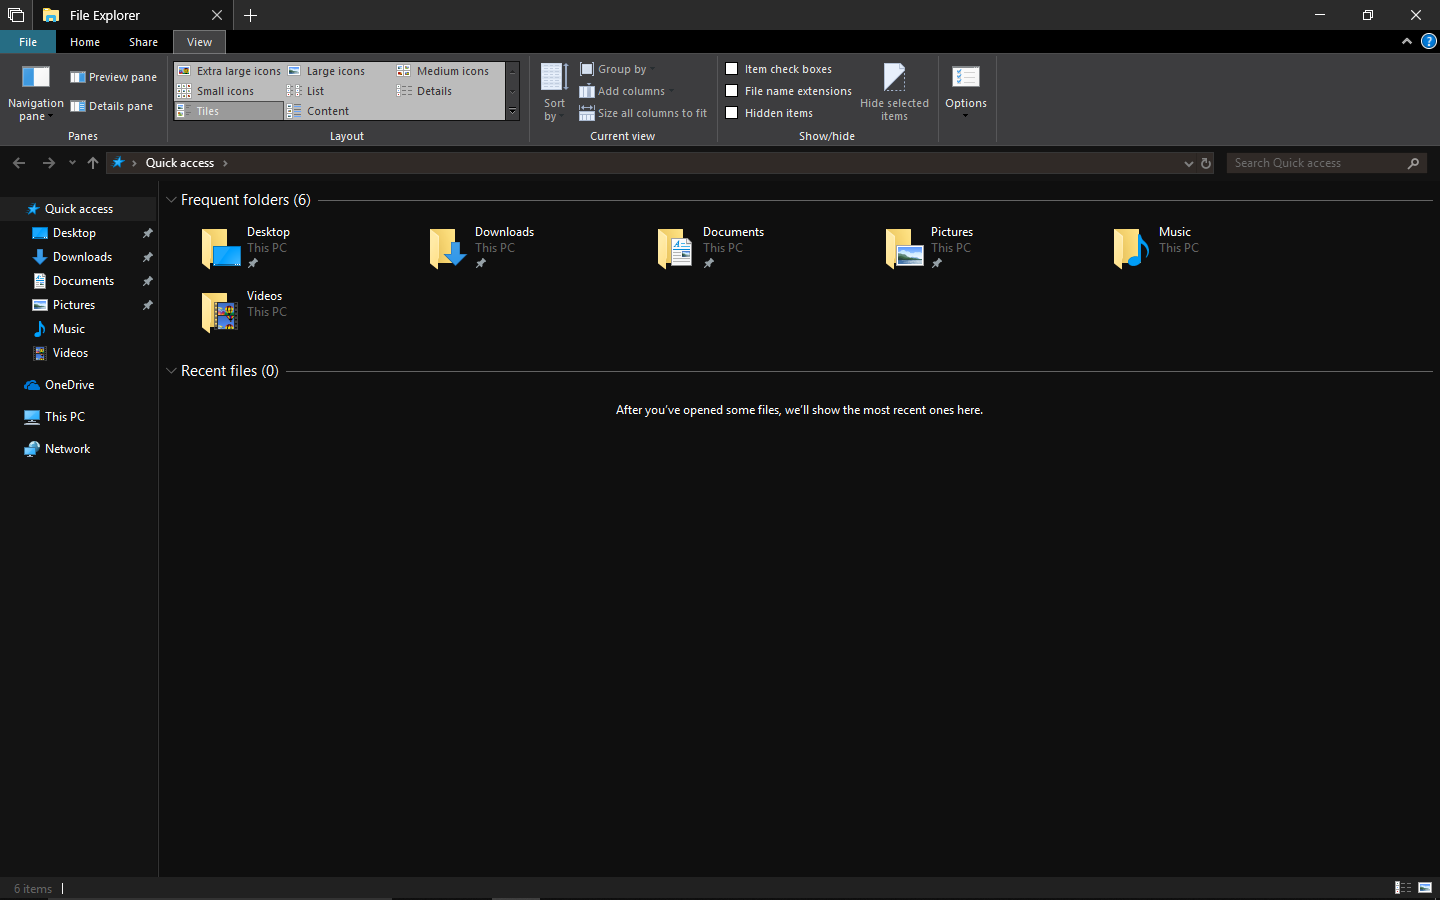 Microsoft Now Has a Usable Dark Theme for File Explorer in